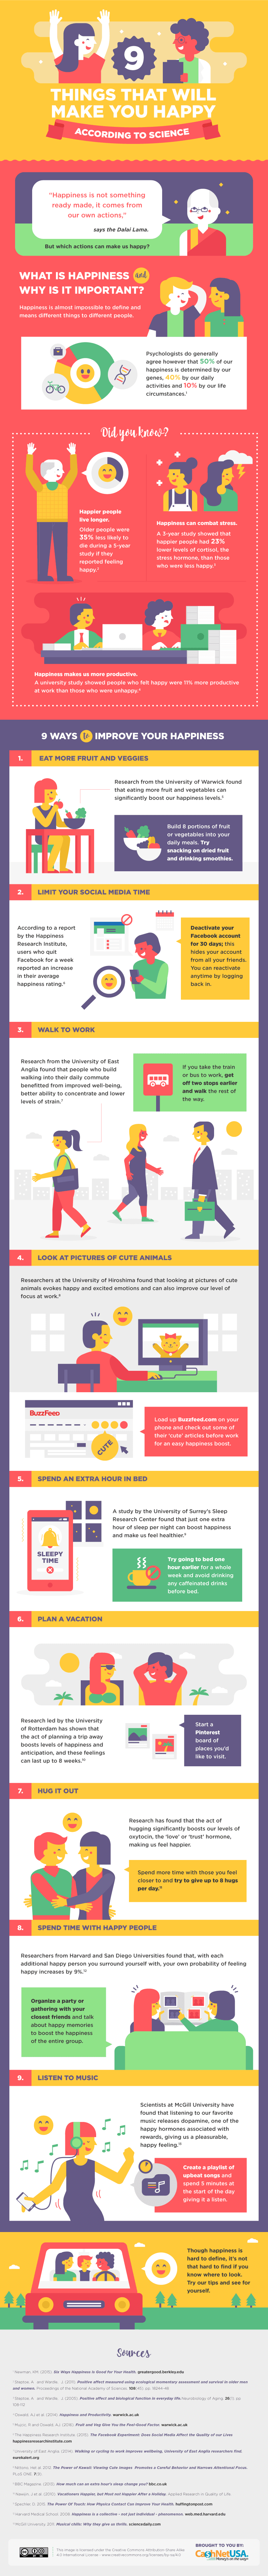 Improve-Your-Happiness